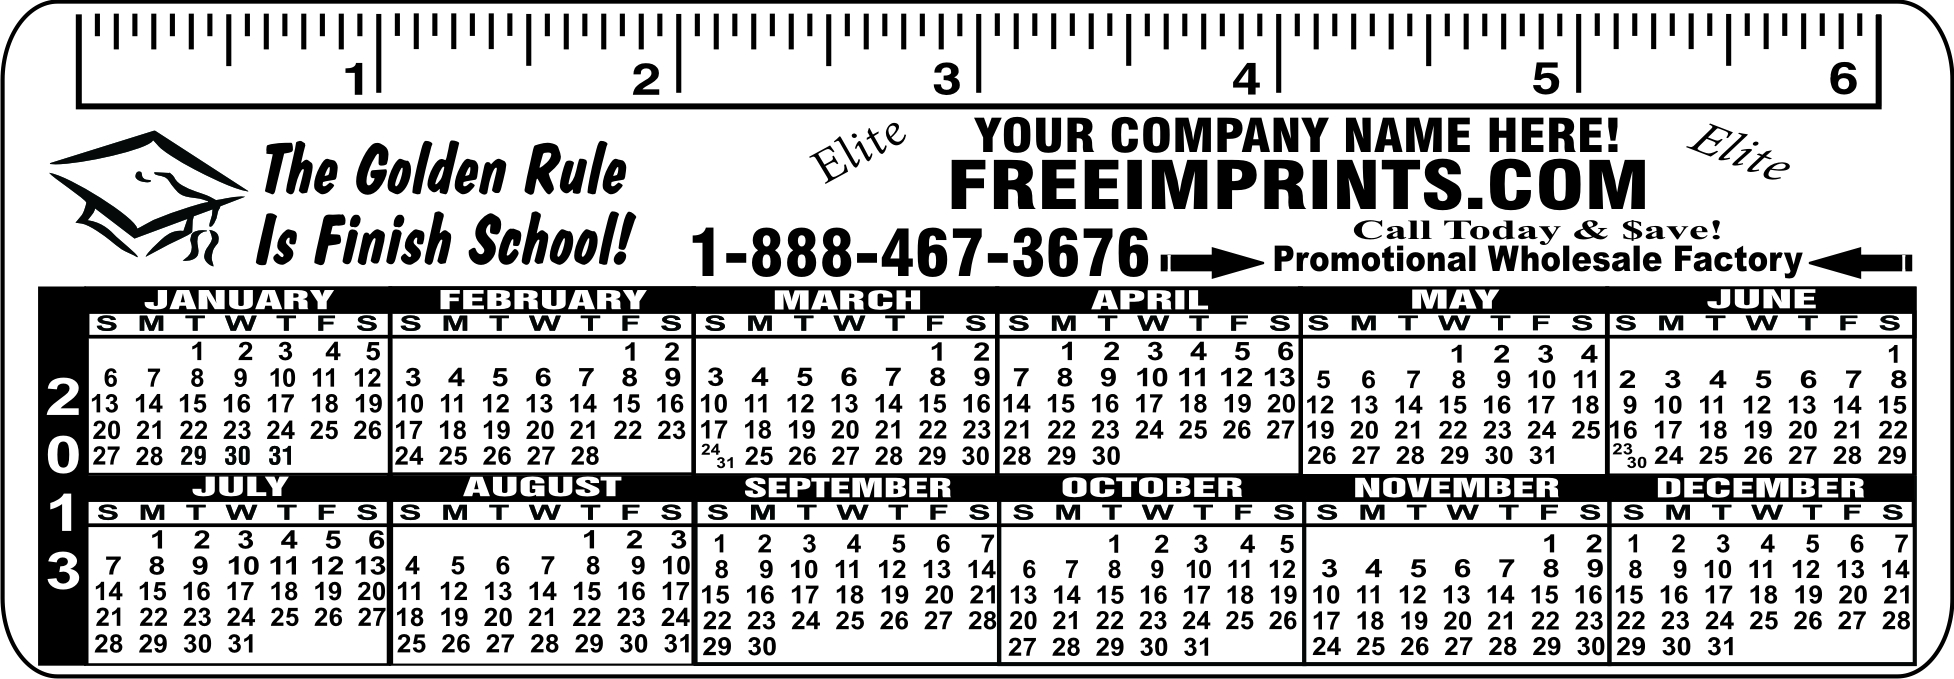 6 INCH FLEXIBLE RULER/BOOK MARK CALENDAR